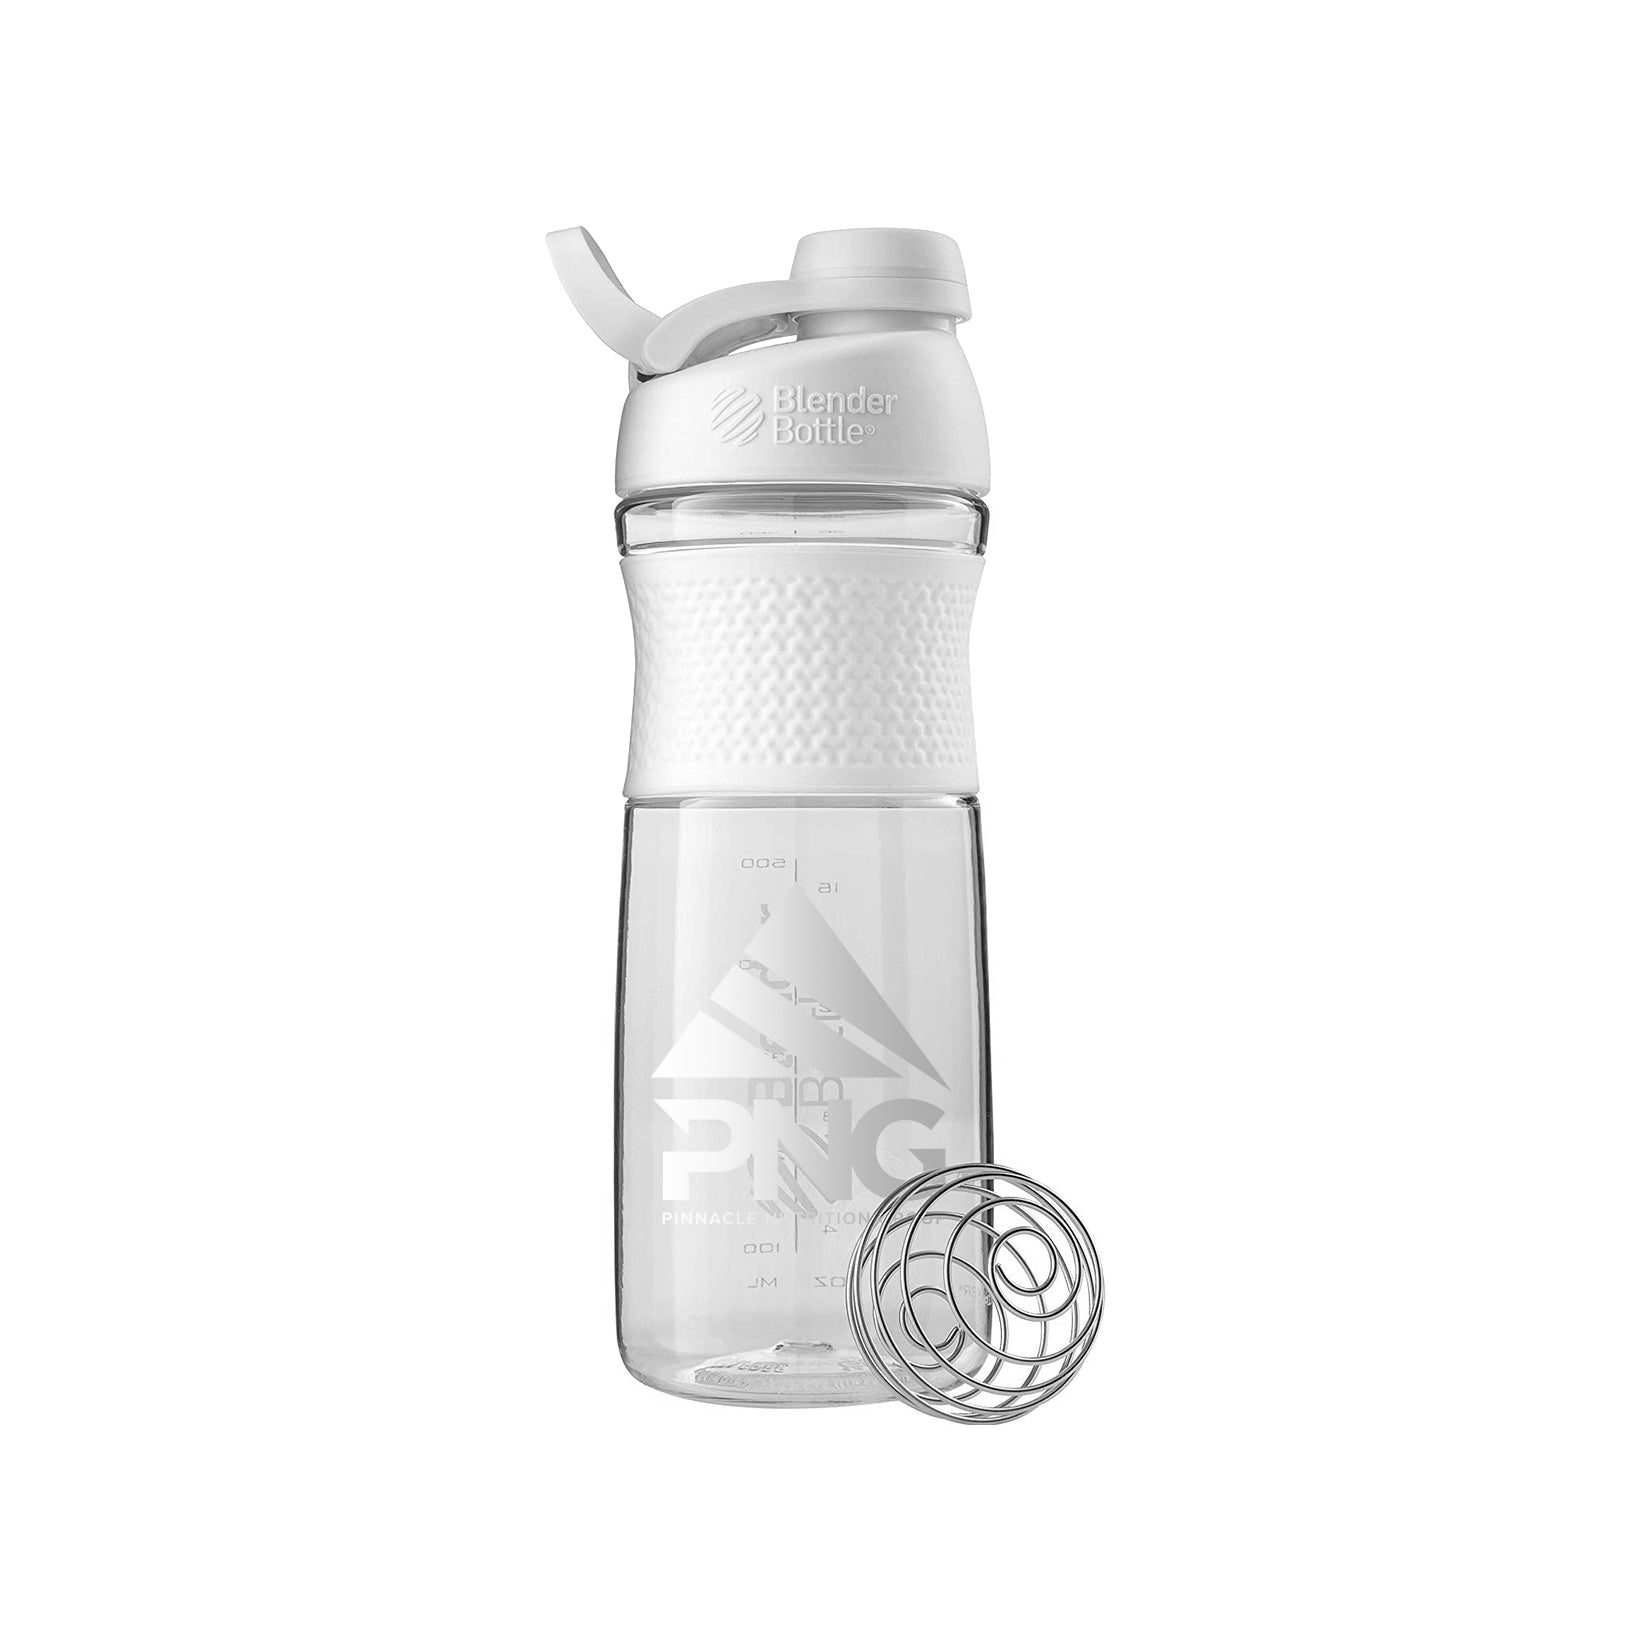 28oz. Blender Bottle SportMixer